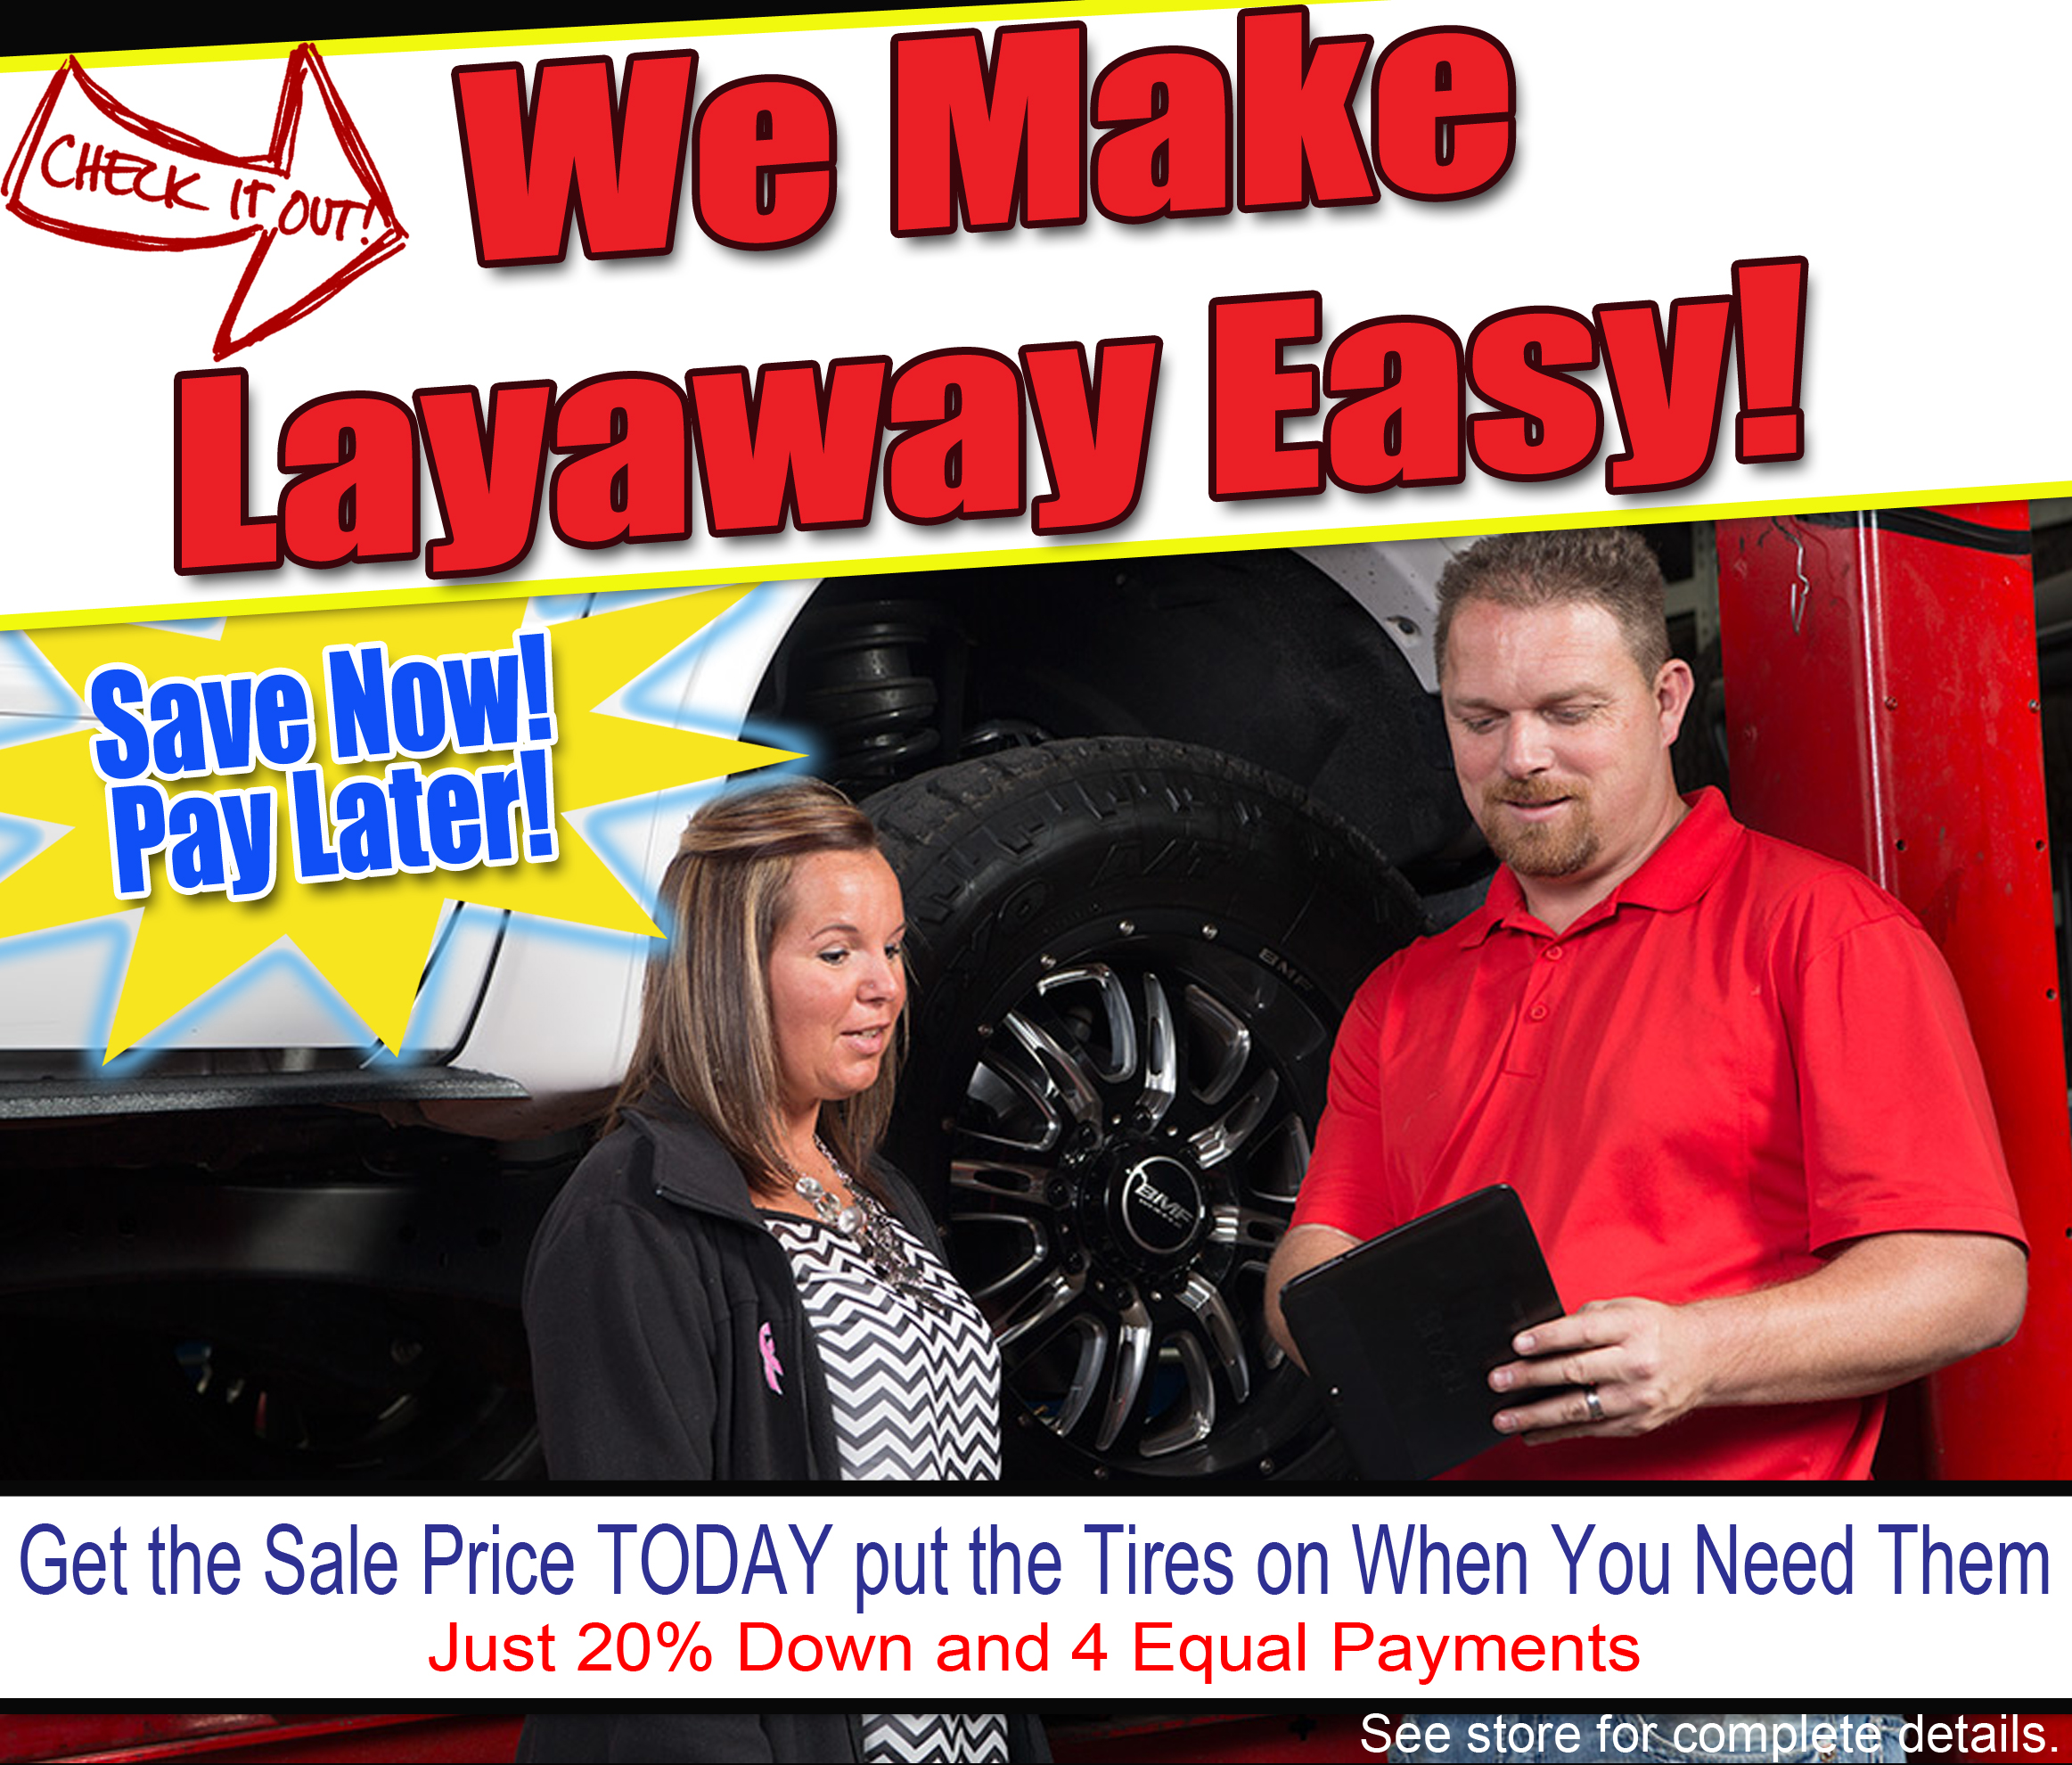 Save Now and Pay Later with our Easy Layaway Program